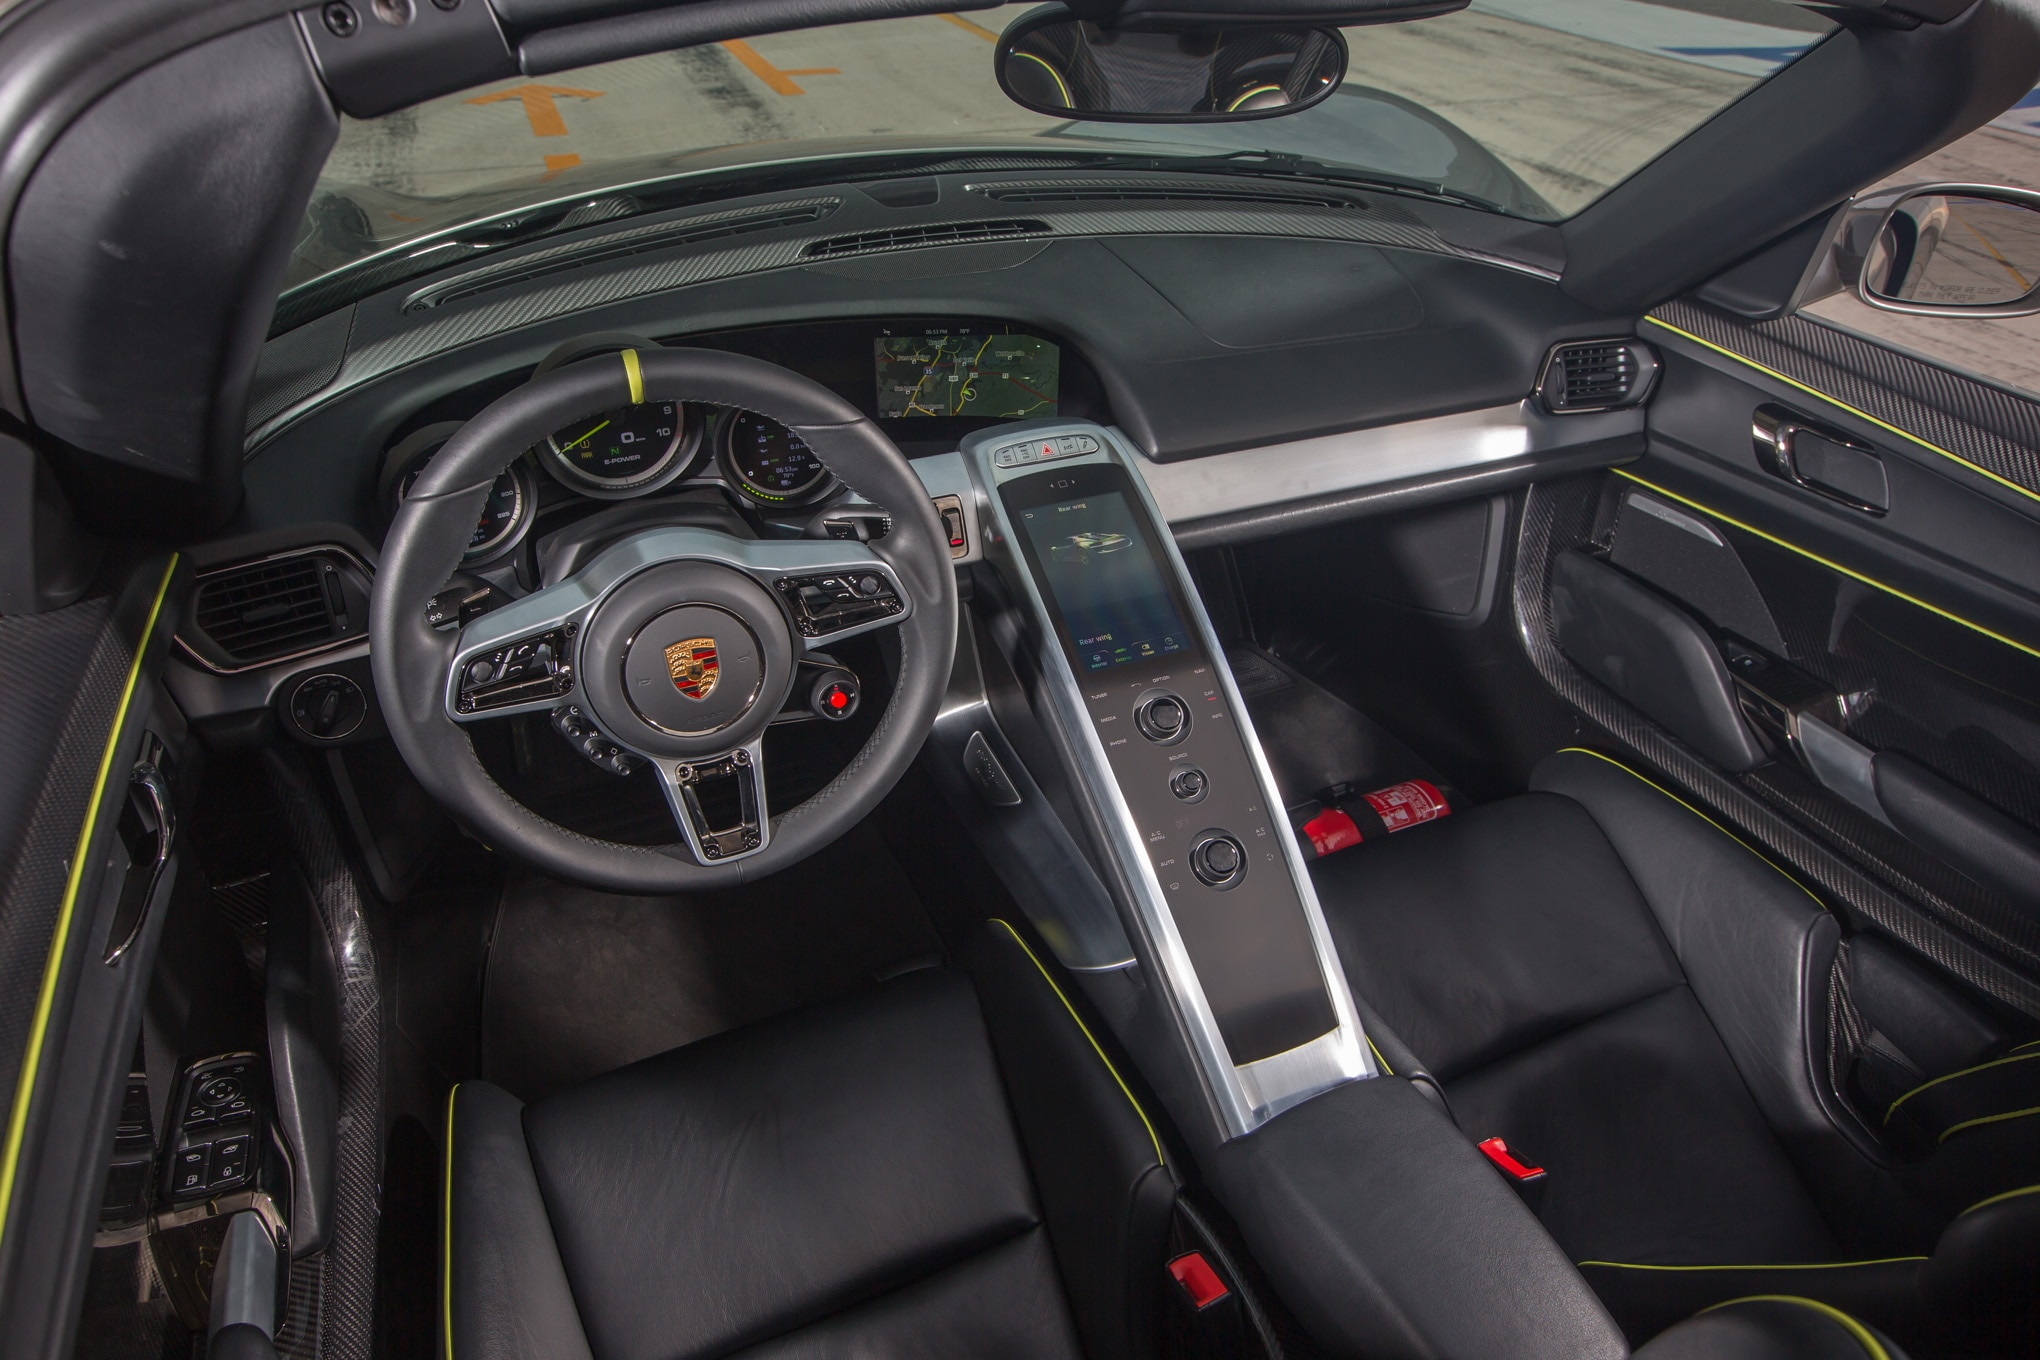 2015-Porsche-918-Spyder-interior-view-021 Cozy Porsche 918 Spyder Concept Price Real Racing 3 Cars Trend